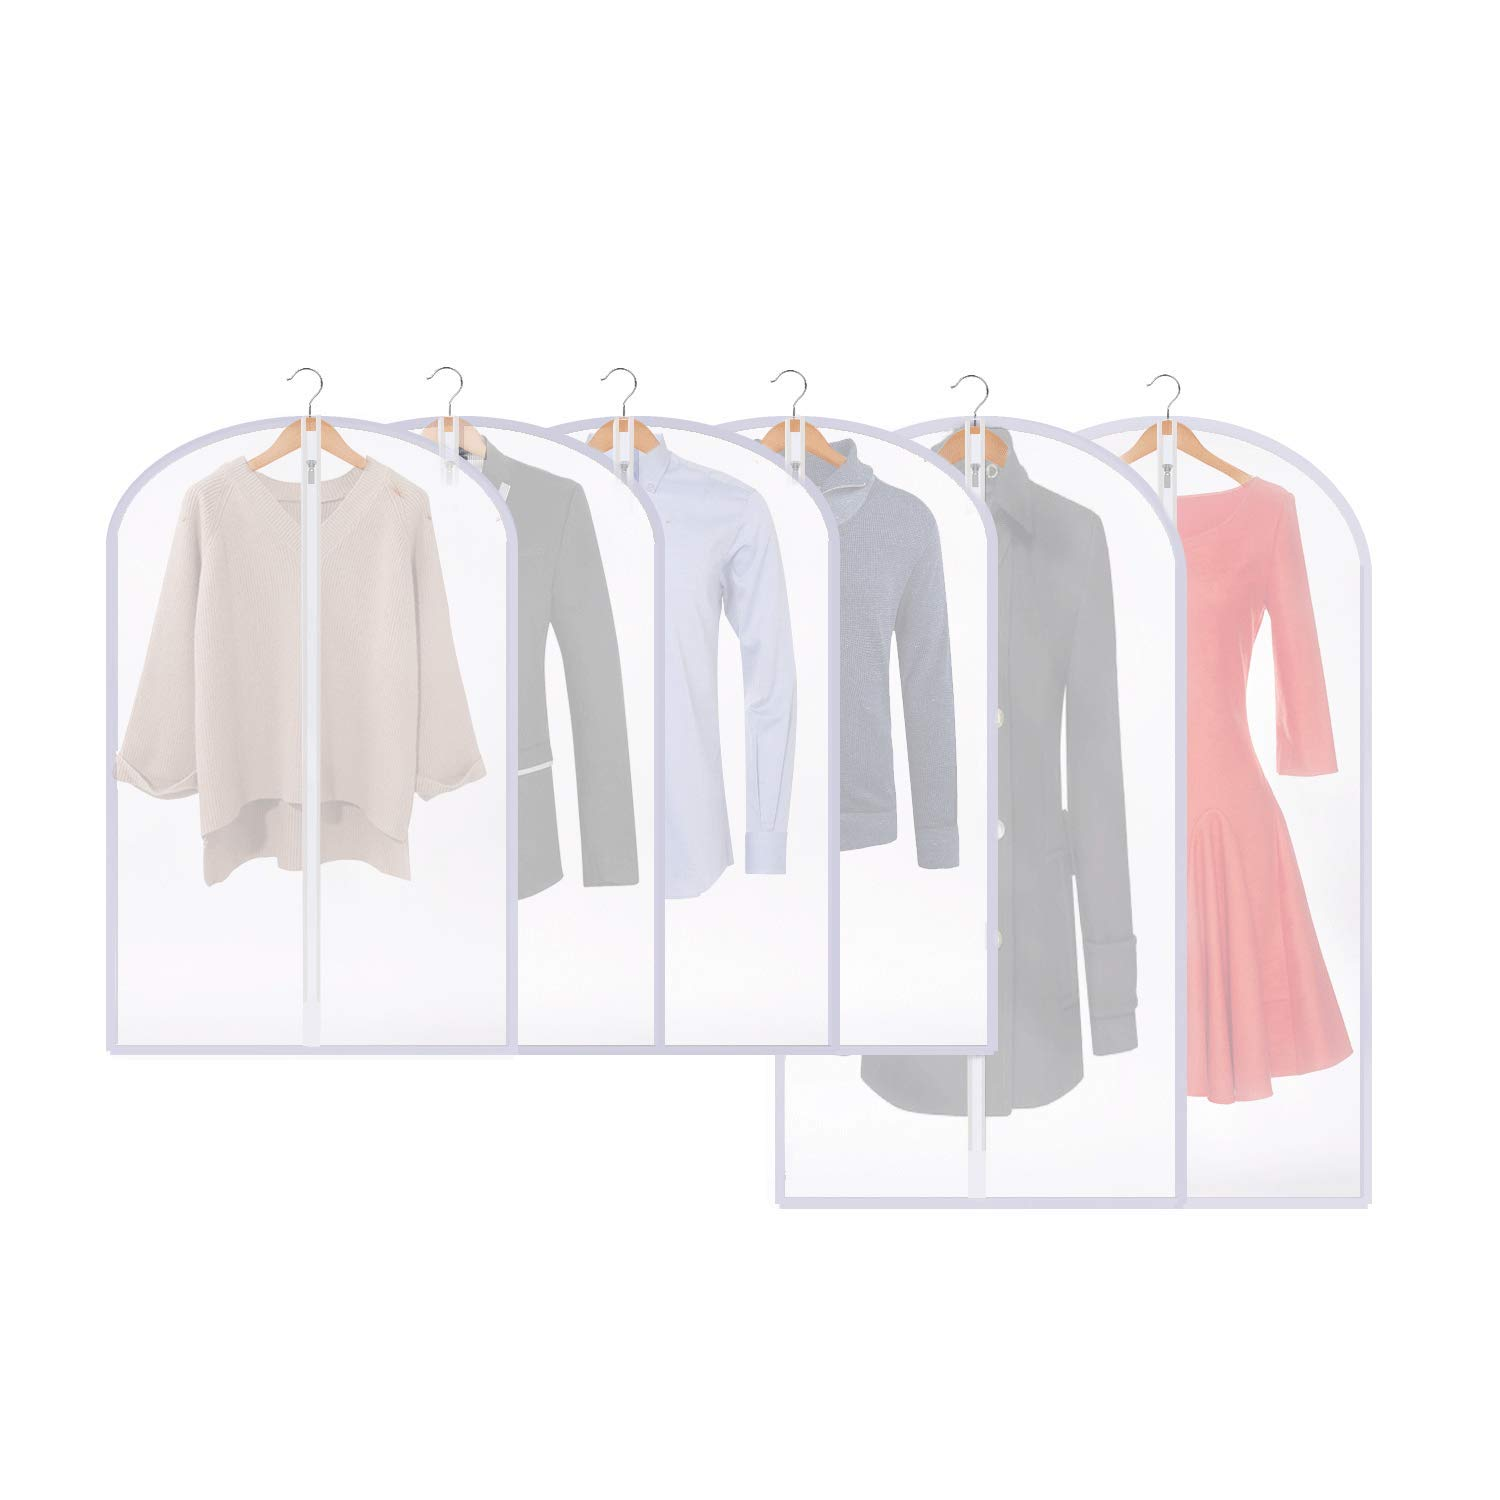 803643b313bd Buy Thipoten Garment Bags,Set of 6 Moth-Proof Dust Cover for Closet ...